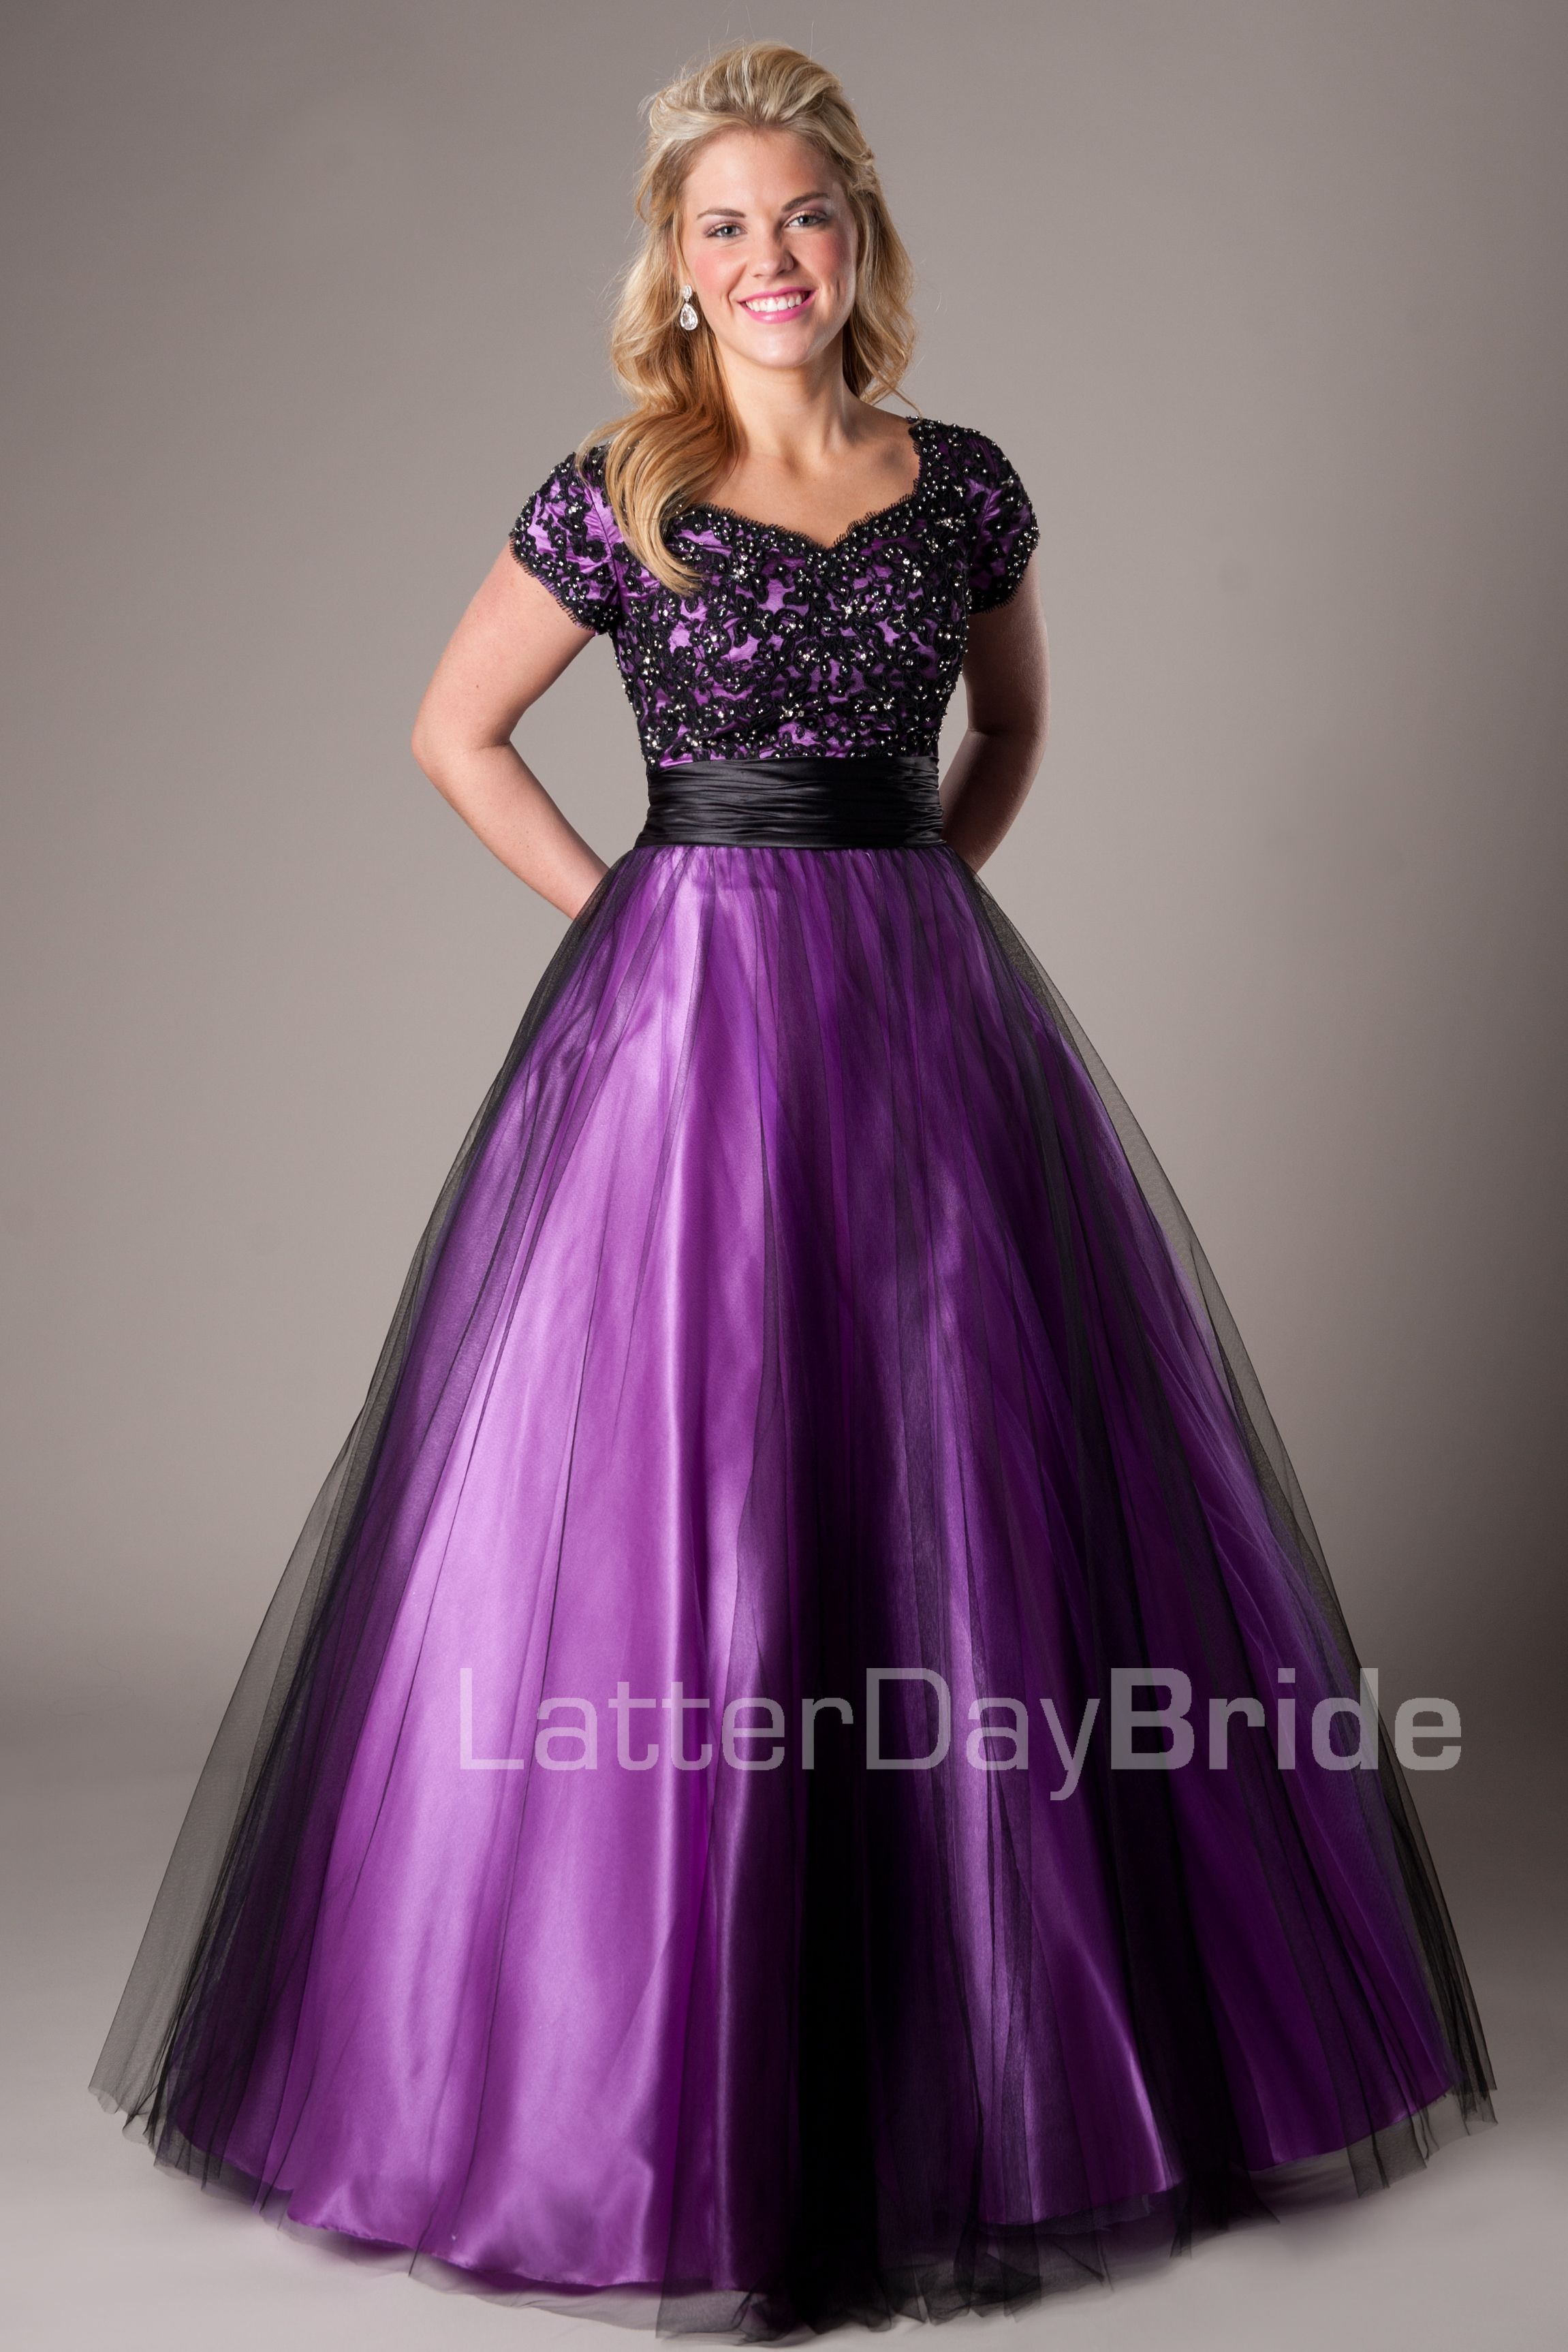 Blake modest mormon lds prom dress modest prom dresses modest ball gown purple satin black tulle lace prom dress with sleeves homecoming dresses 2018 ombrellifo Gallery